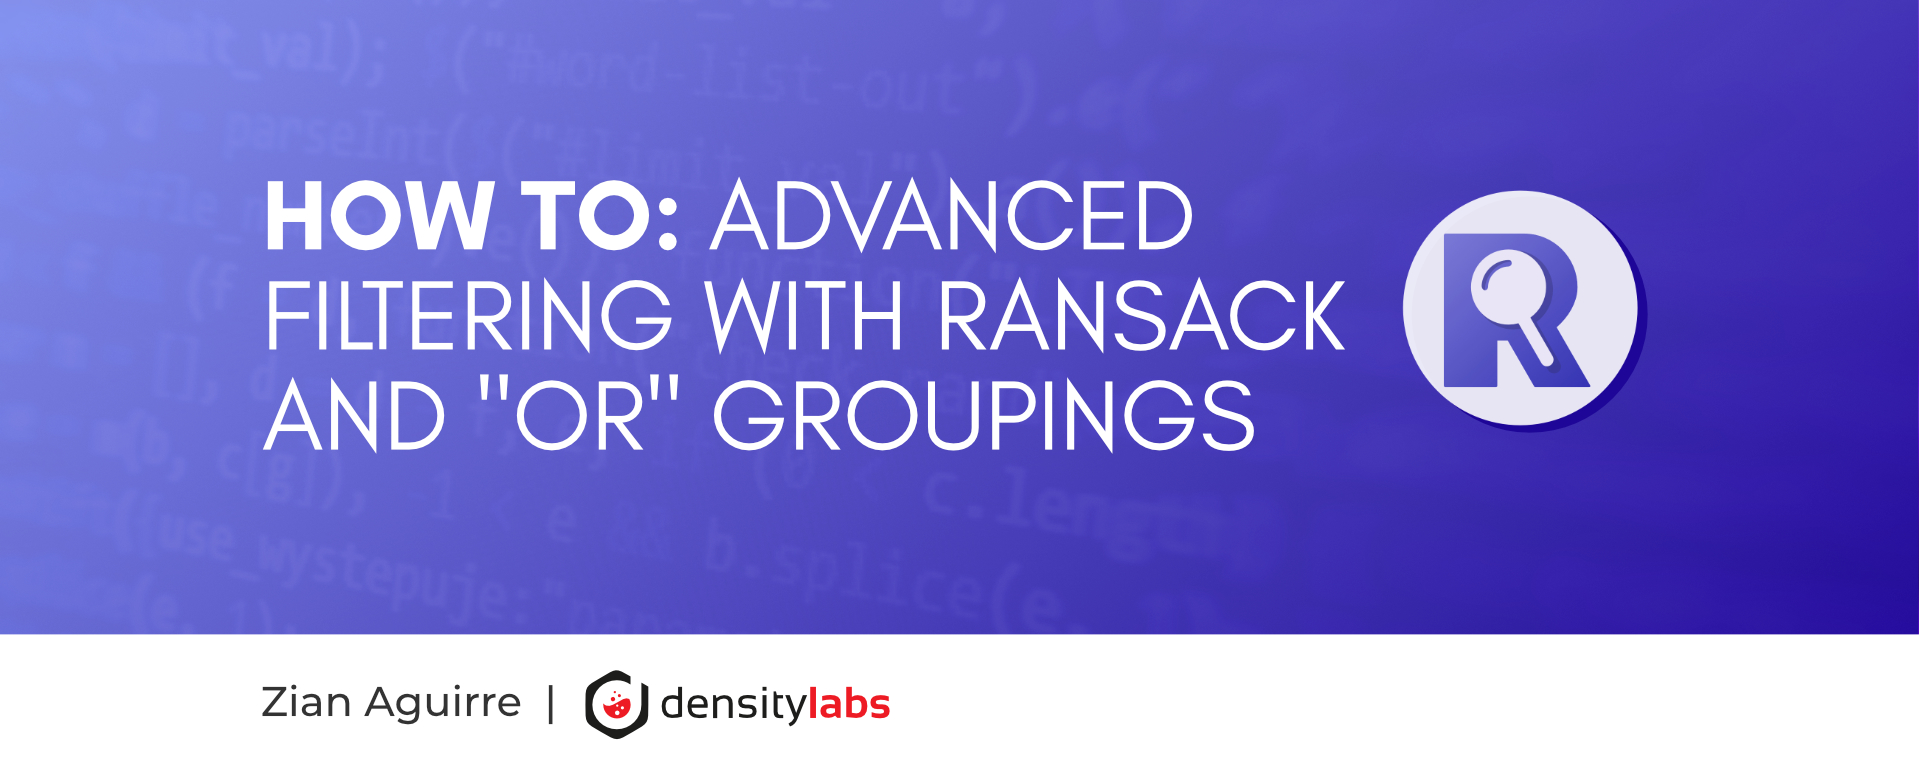 "How to: Advanced Filtering with Ransack and ""OR"" Groupings"